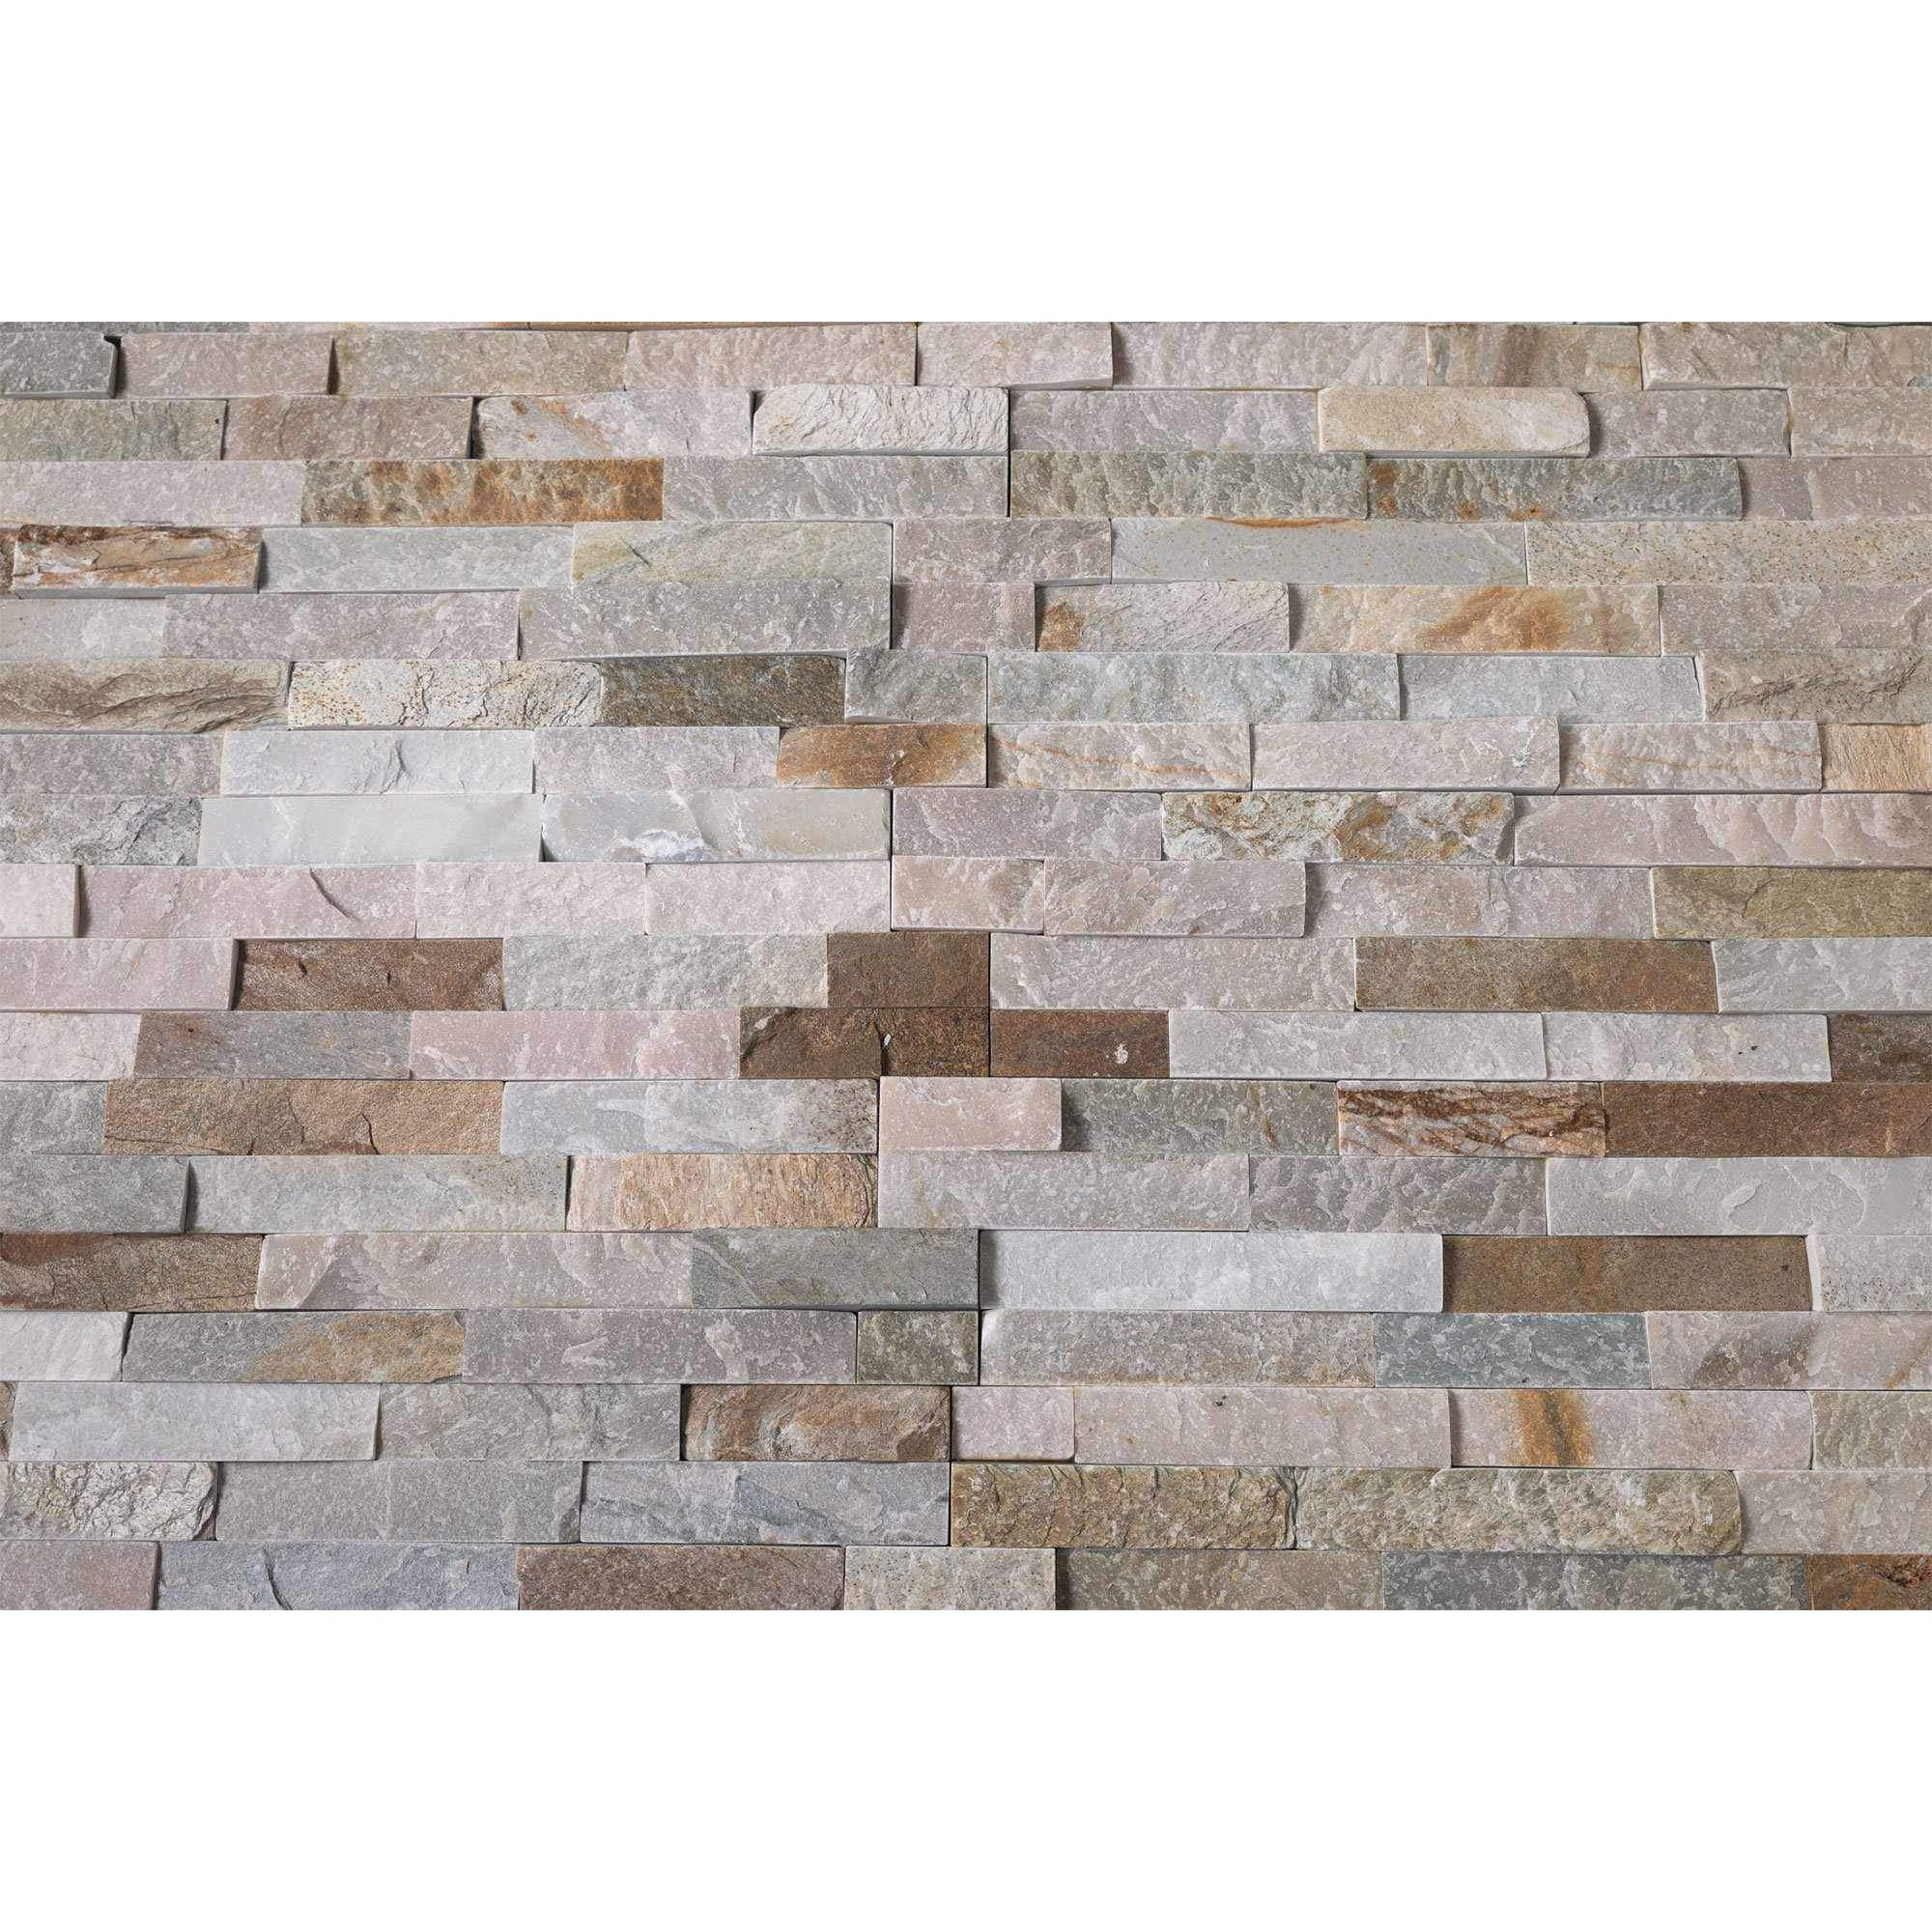 Natural Stacked Stone Feature Wall Cladding Panels - Honey Oyster